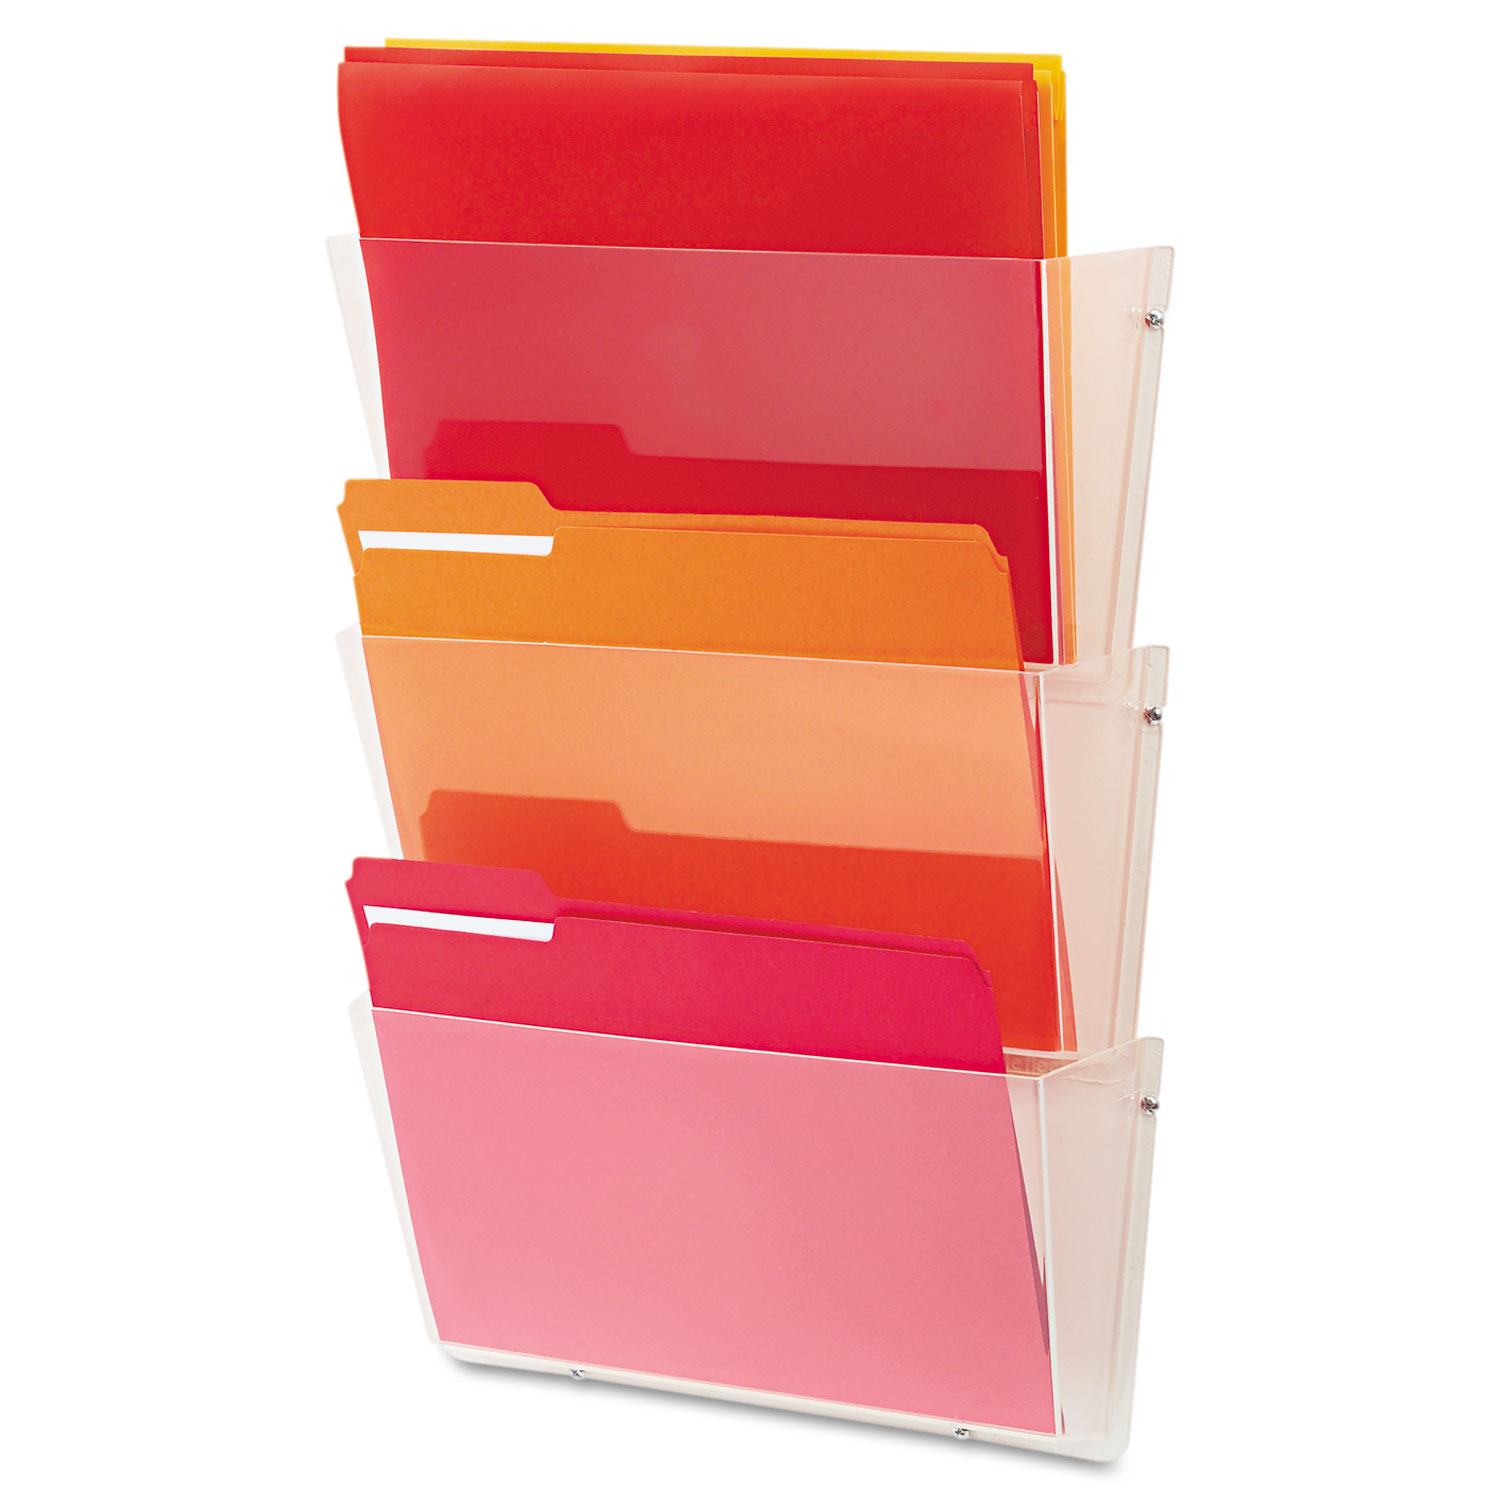 Unbreakable DocuPocket 3-Pocket Wall File, Letter, 14 1/2 x 3 x 6 1/2, Clear